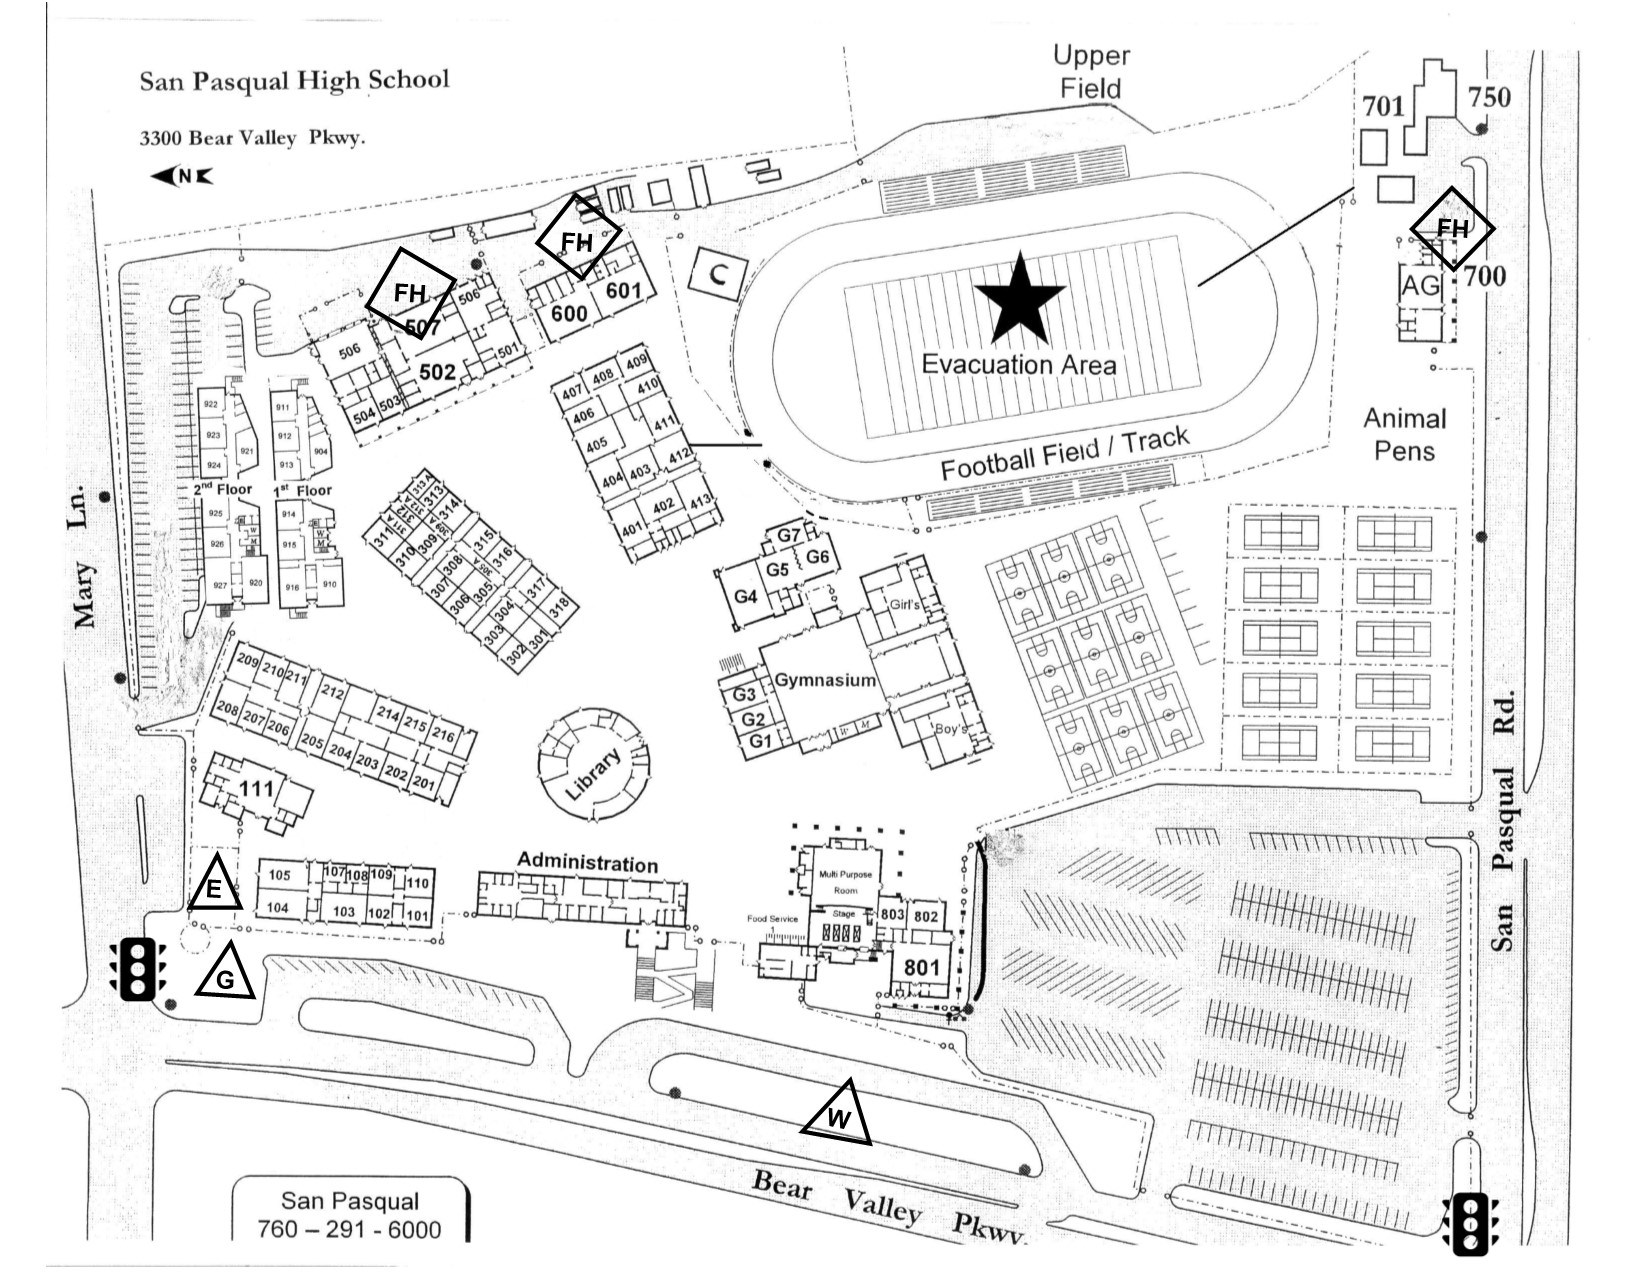 Cal Tech Campus Map.Campus Map Our School San Pasqual High